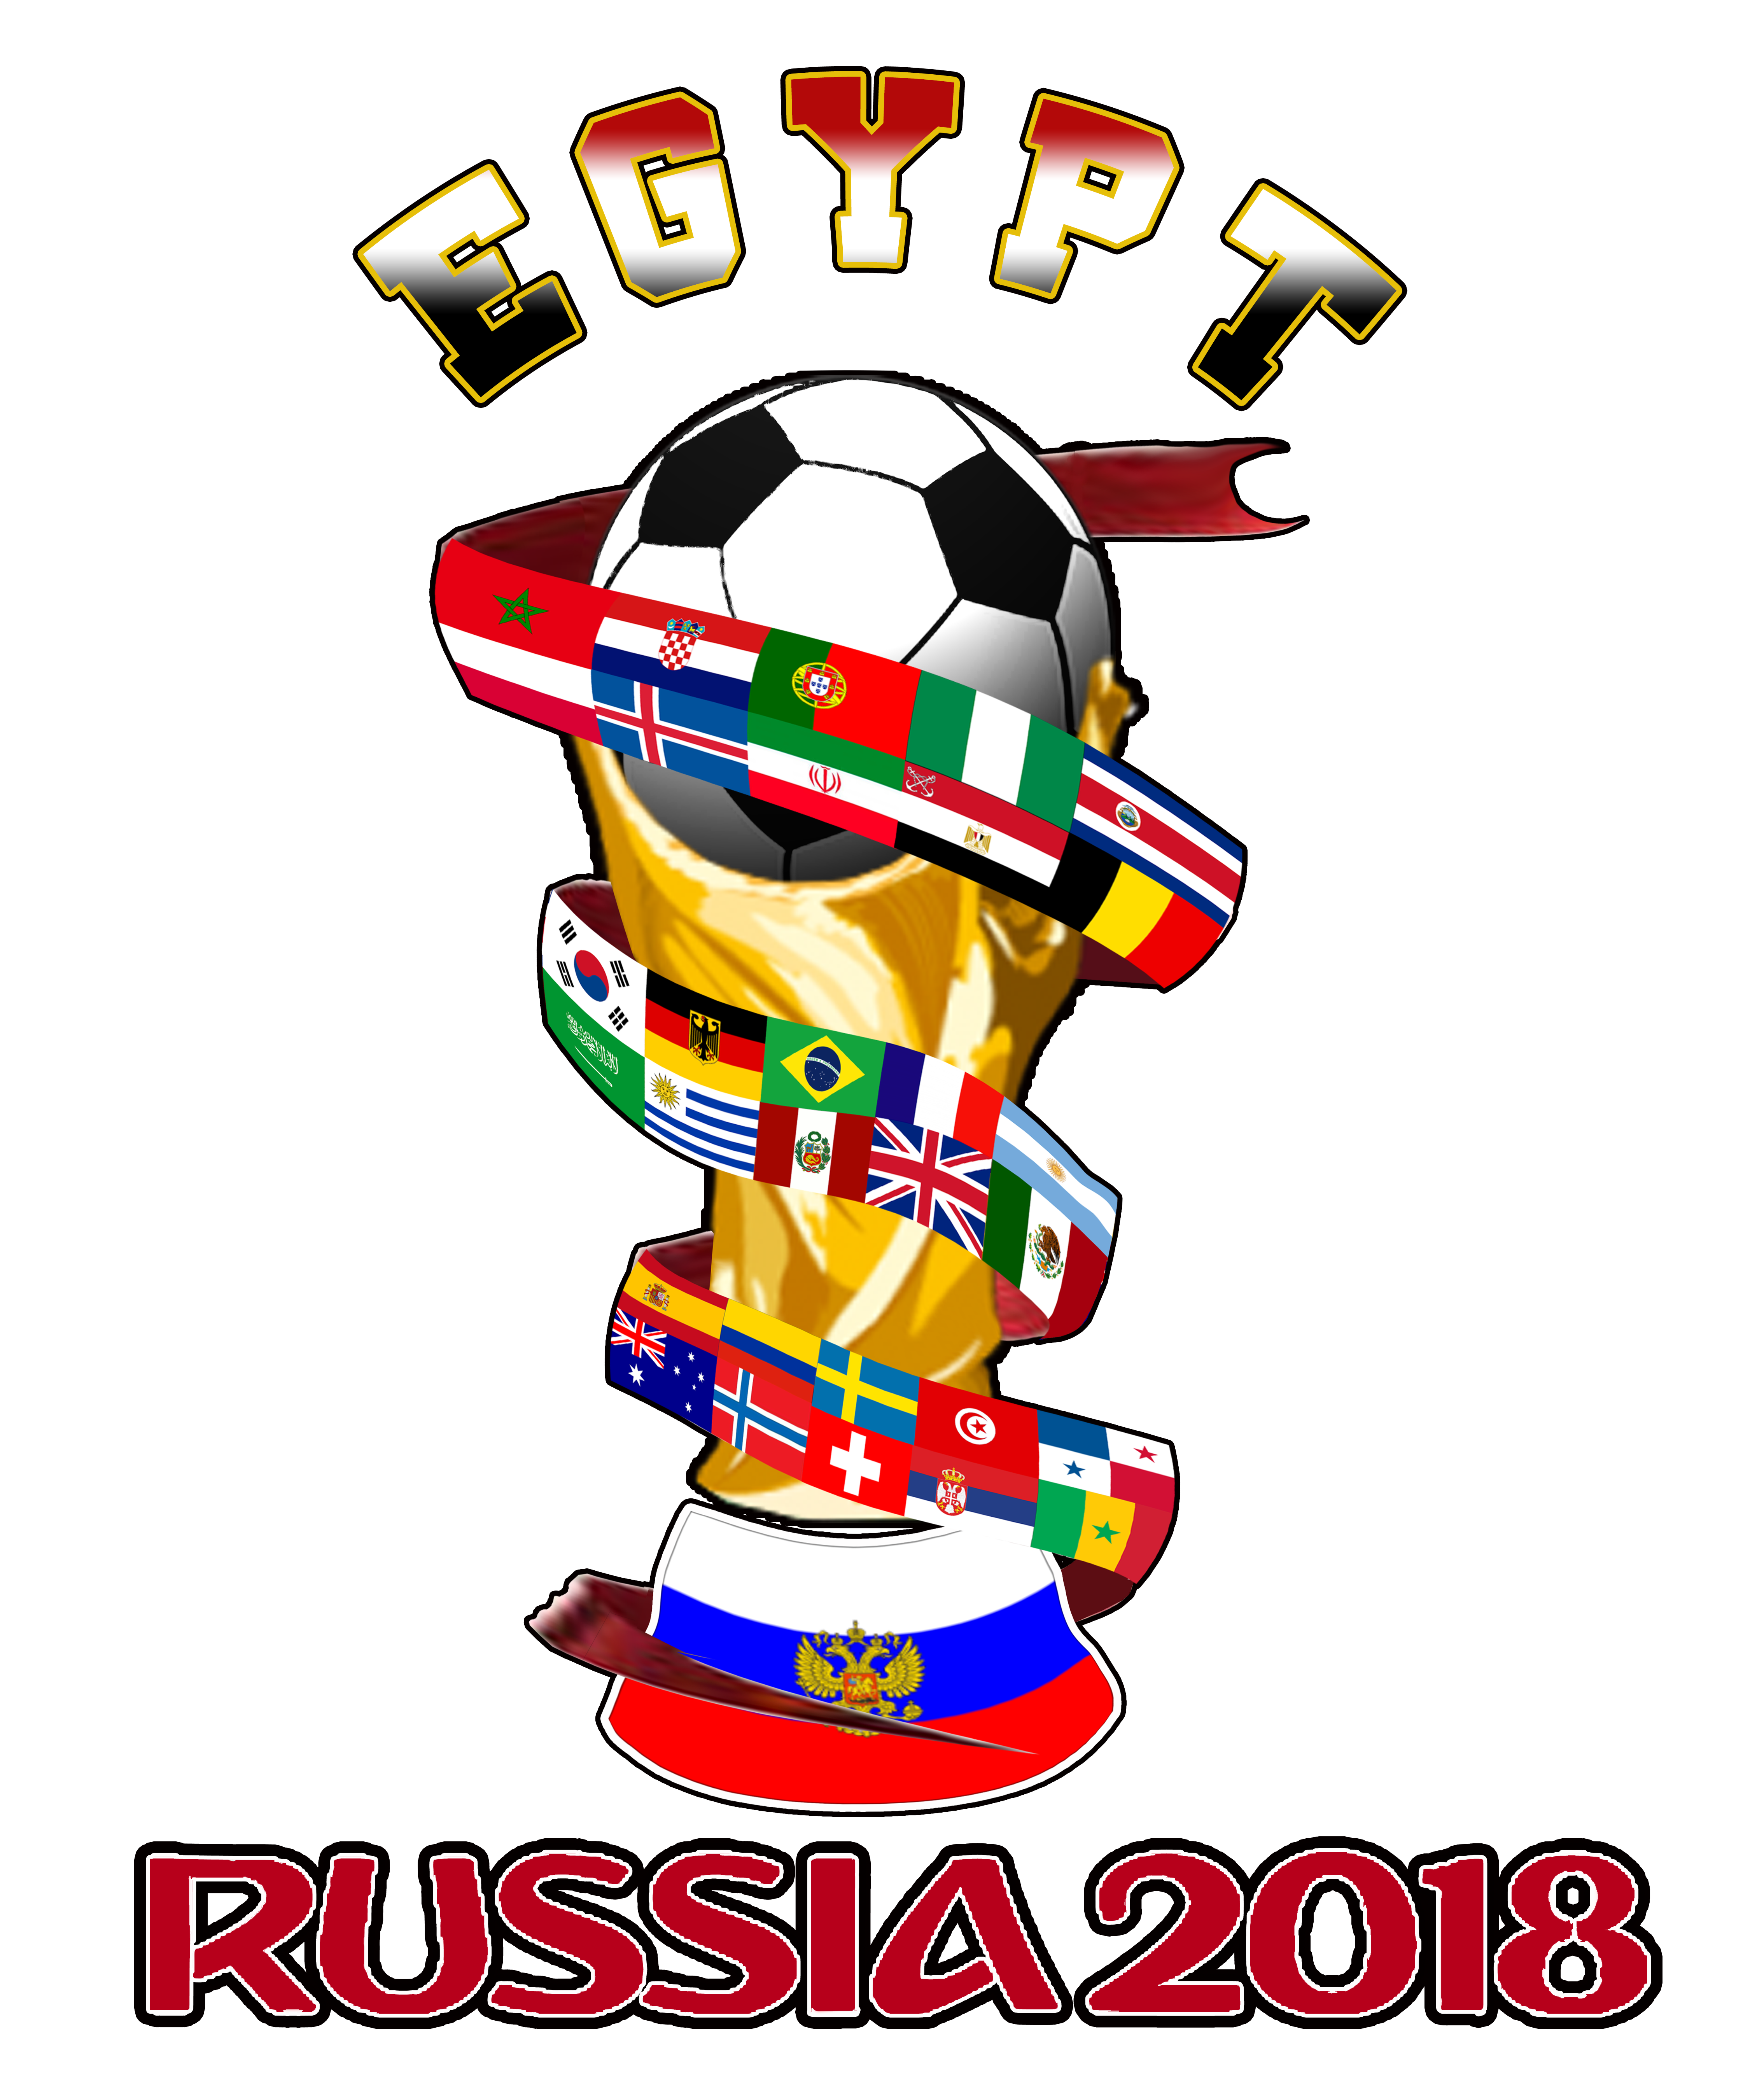 Football players pushing clipart graphic black and white download EGYPT WORLD CUP RUSSIA 2018 | Camisetas, el diseño es todo ... graphic black and white download